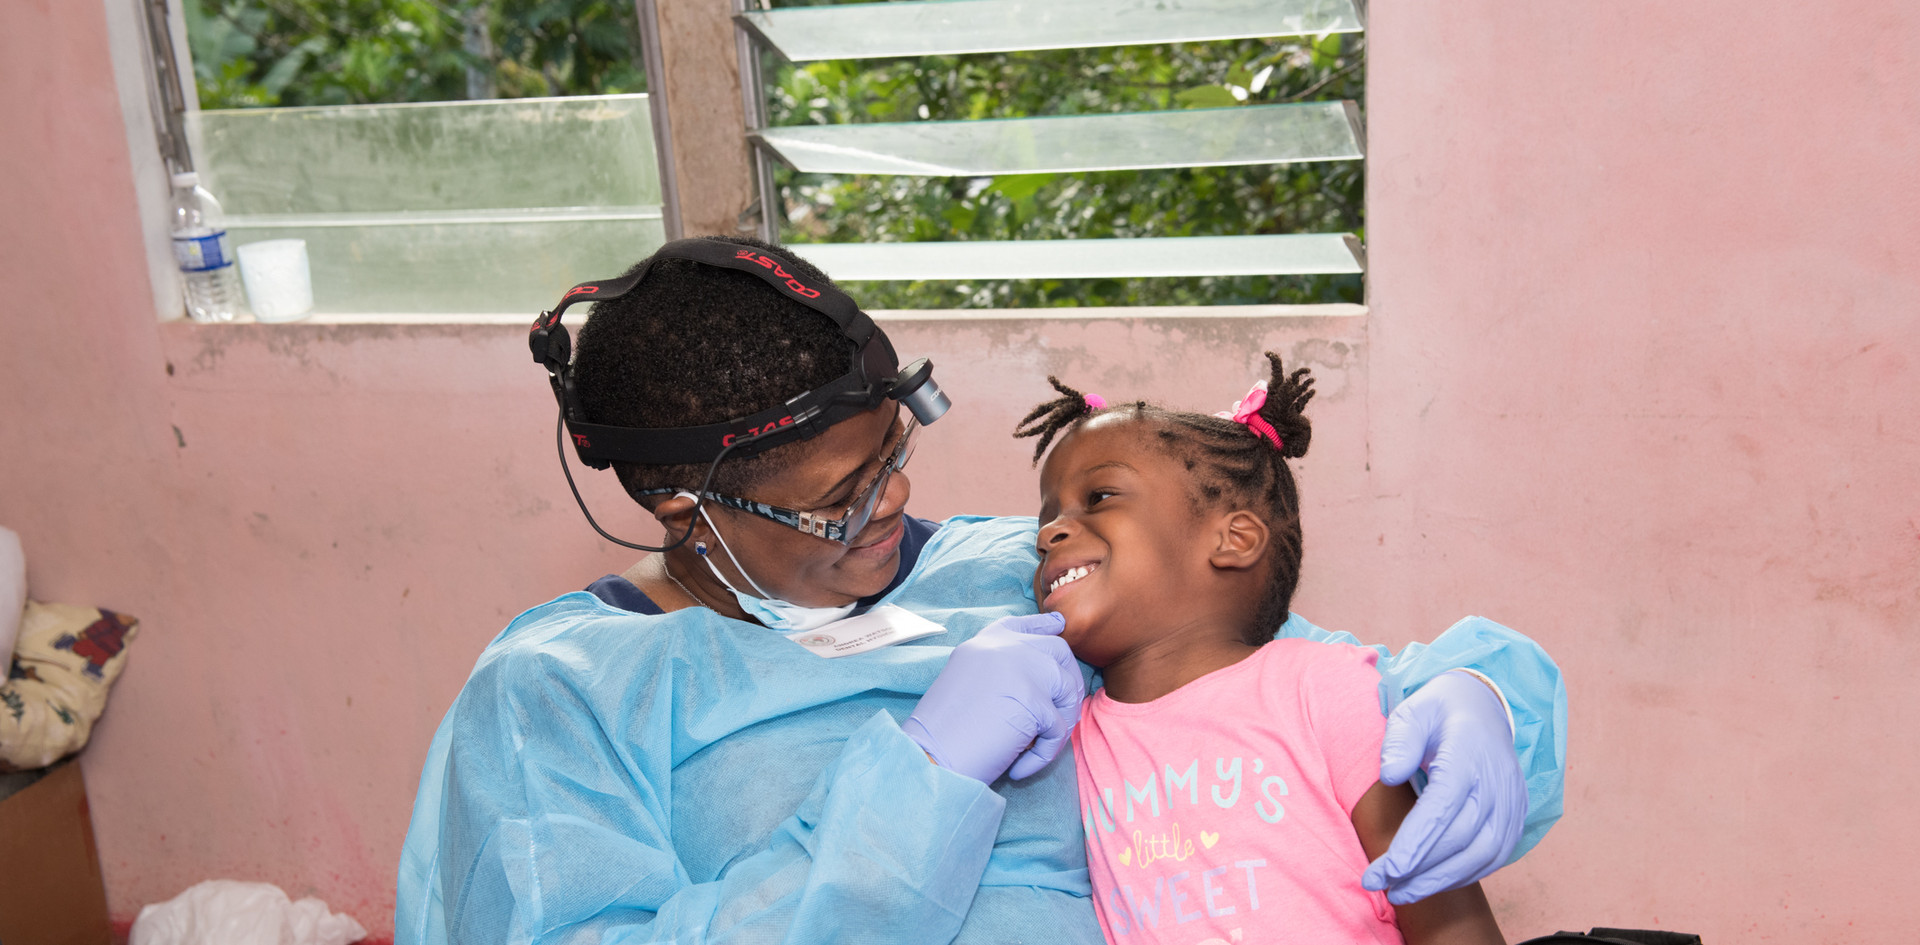 dental - jamaica - 2019 - 2.jpg